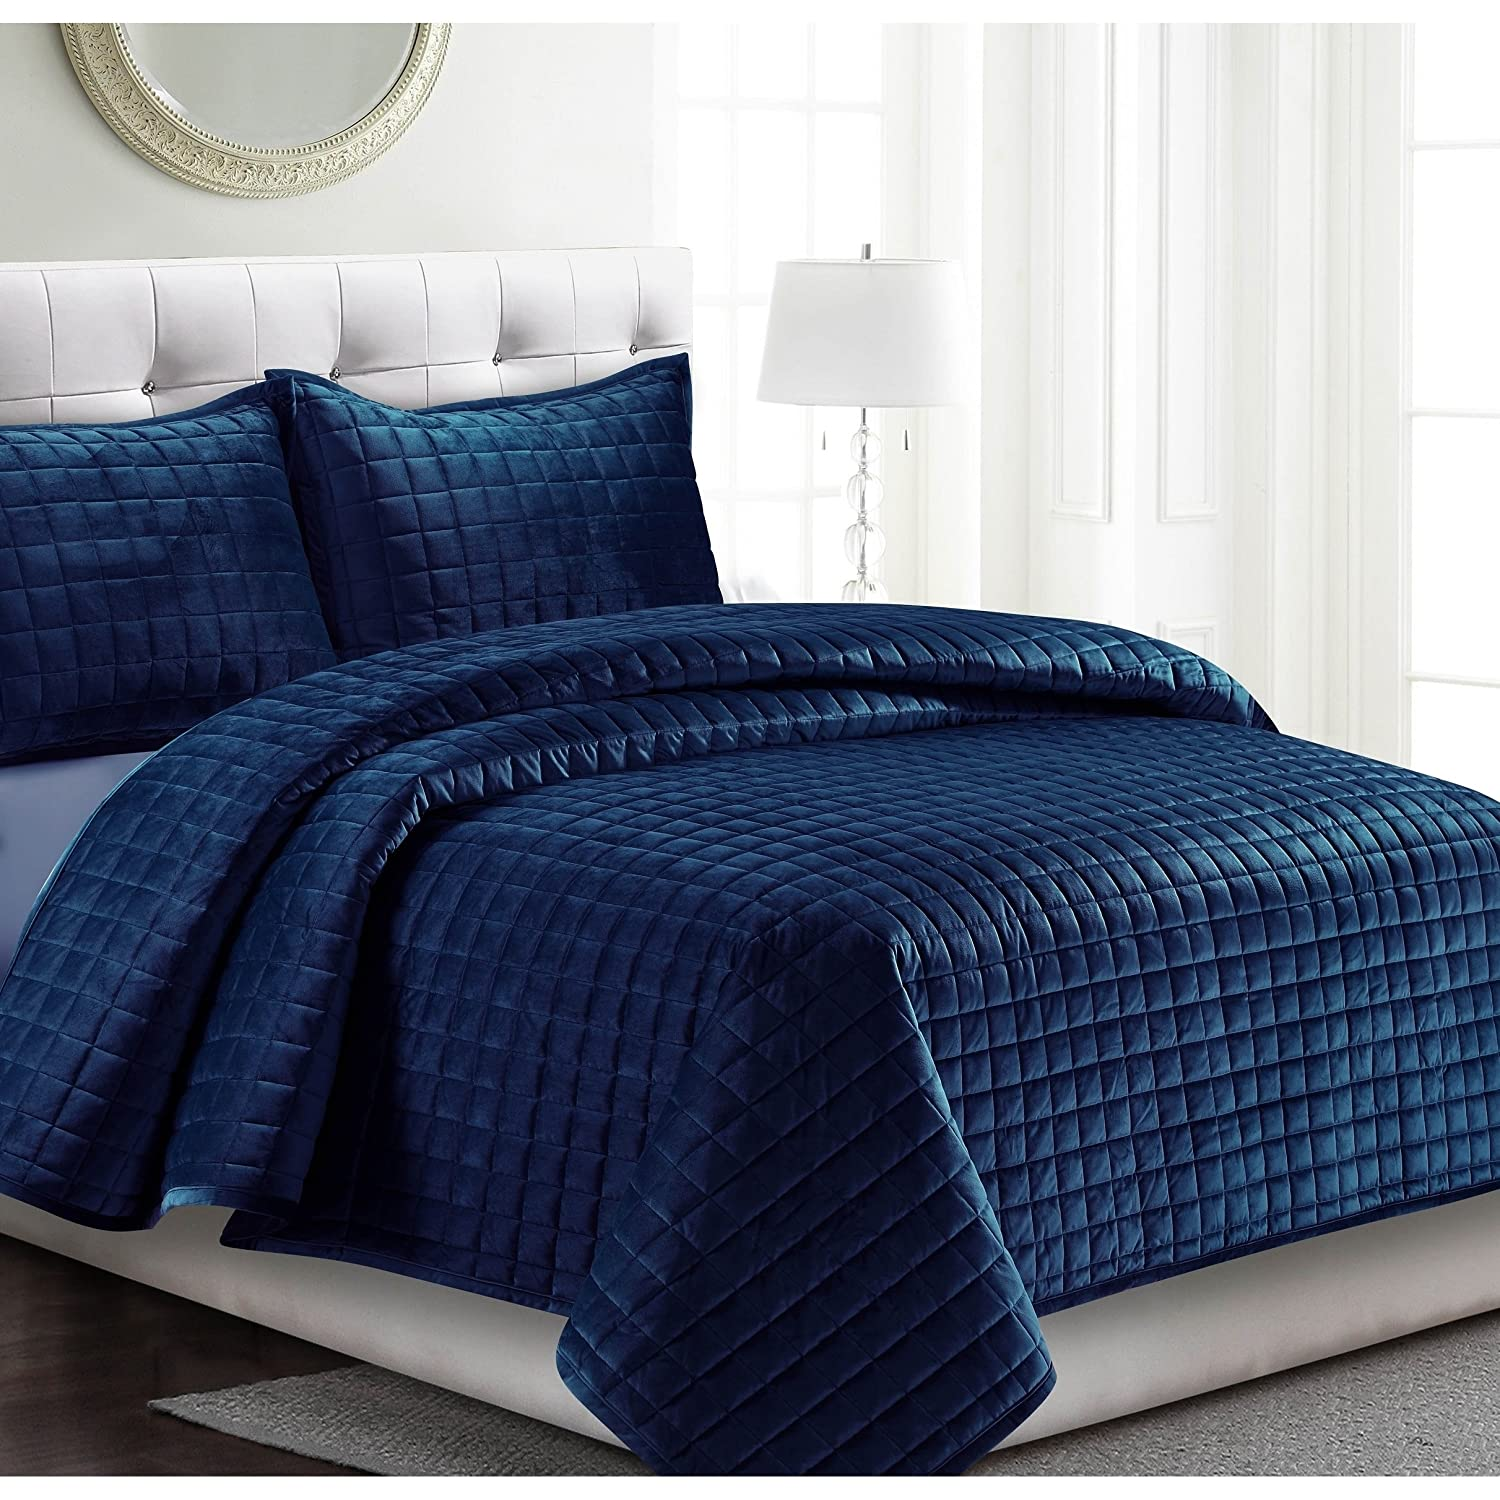 Osvt 3 Piece Navy Blue Chenille Quilt Set King Geometric Diamond